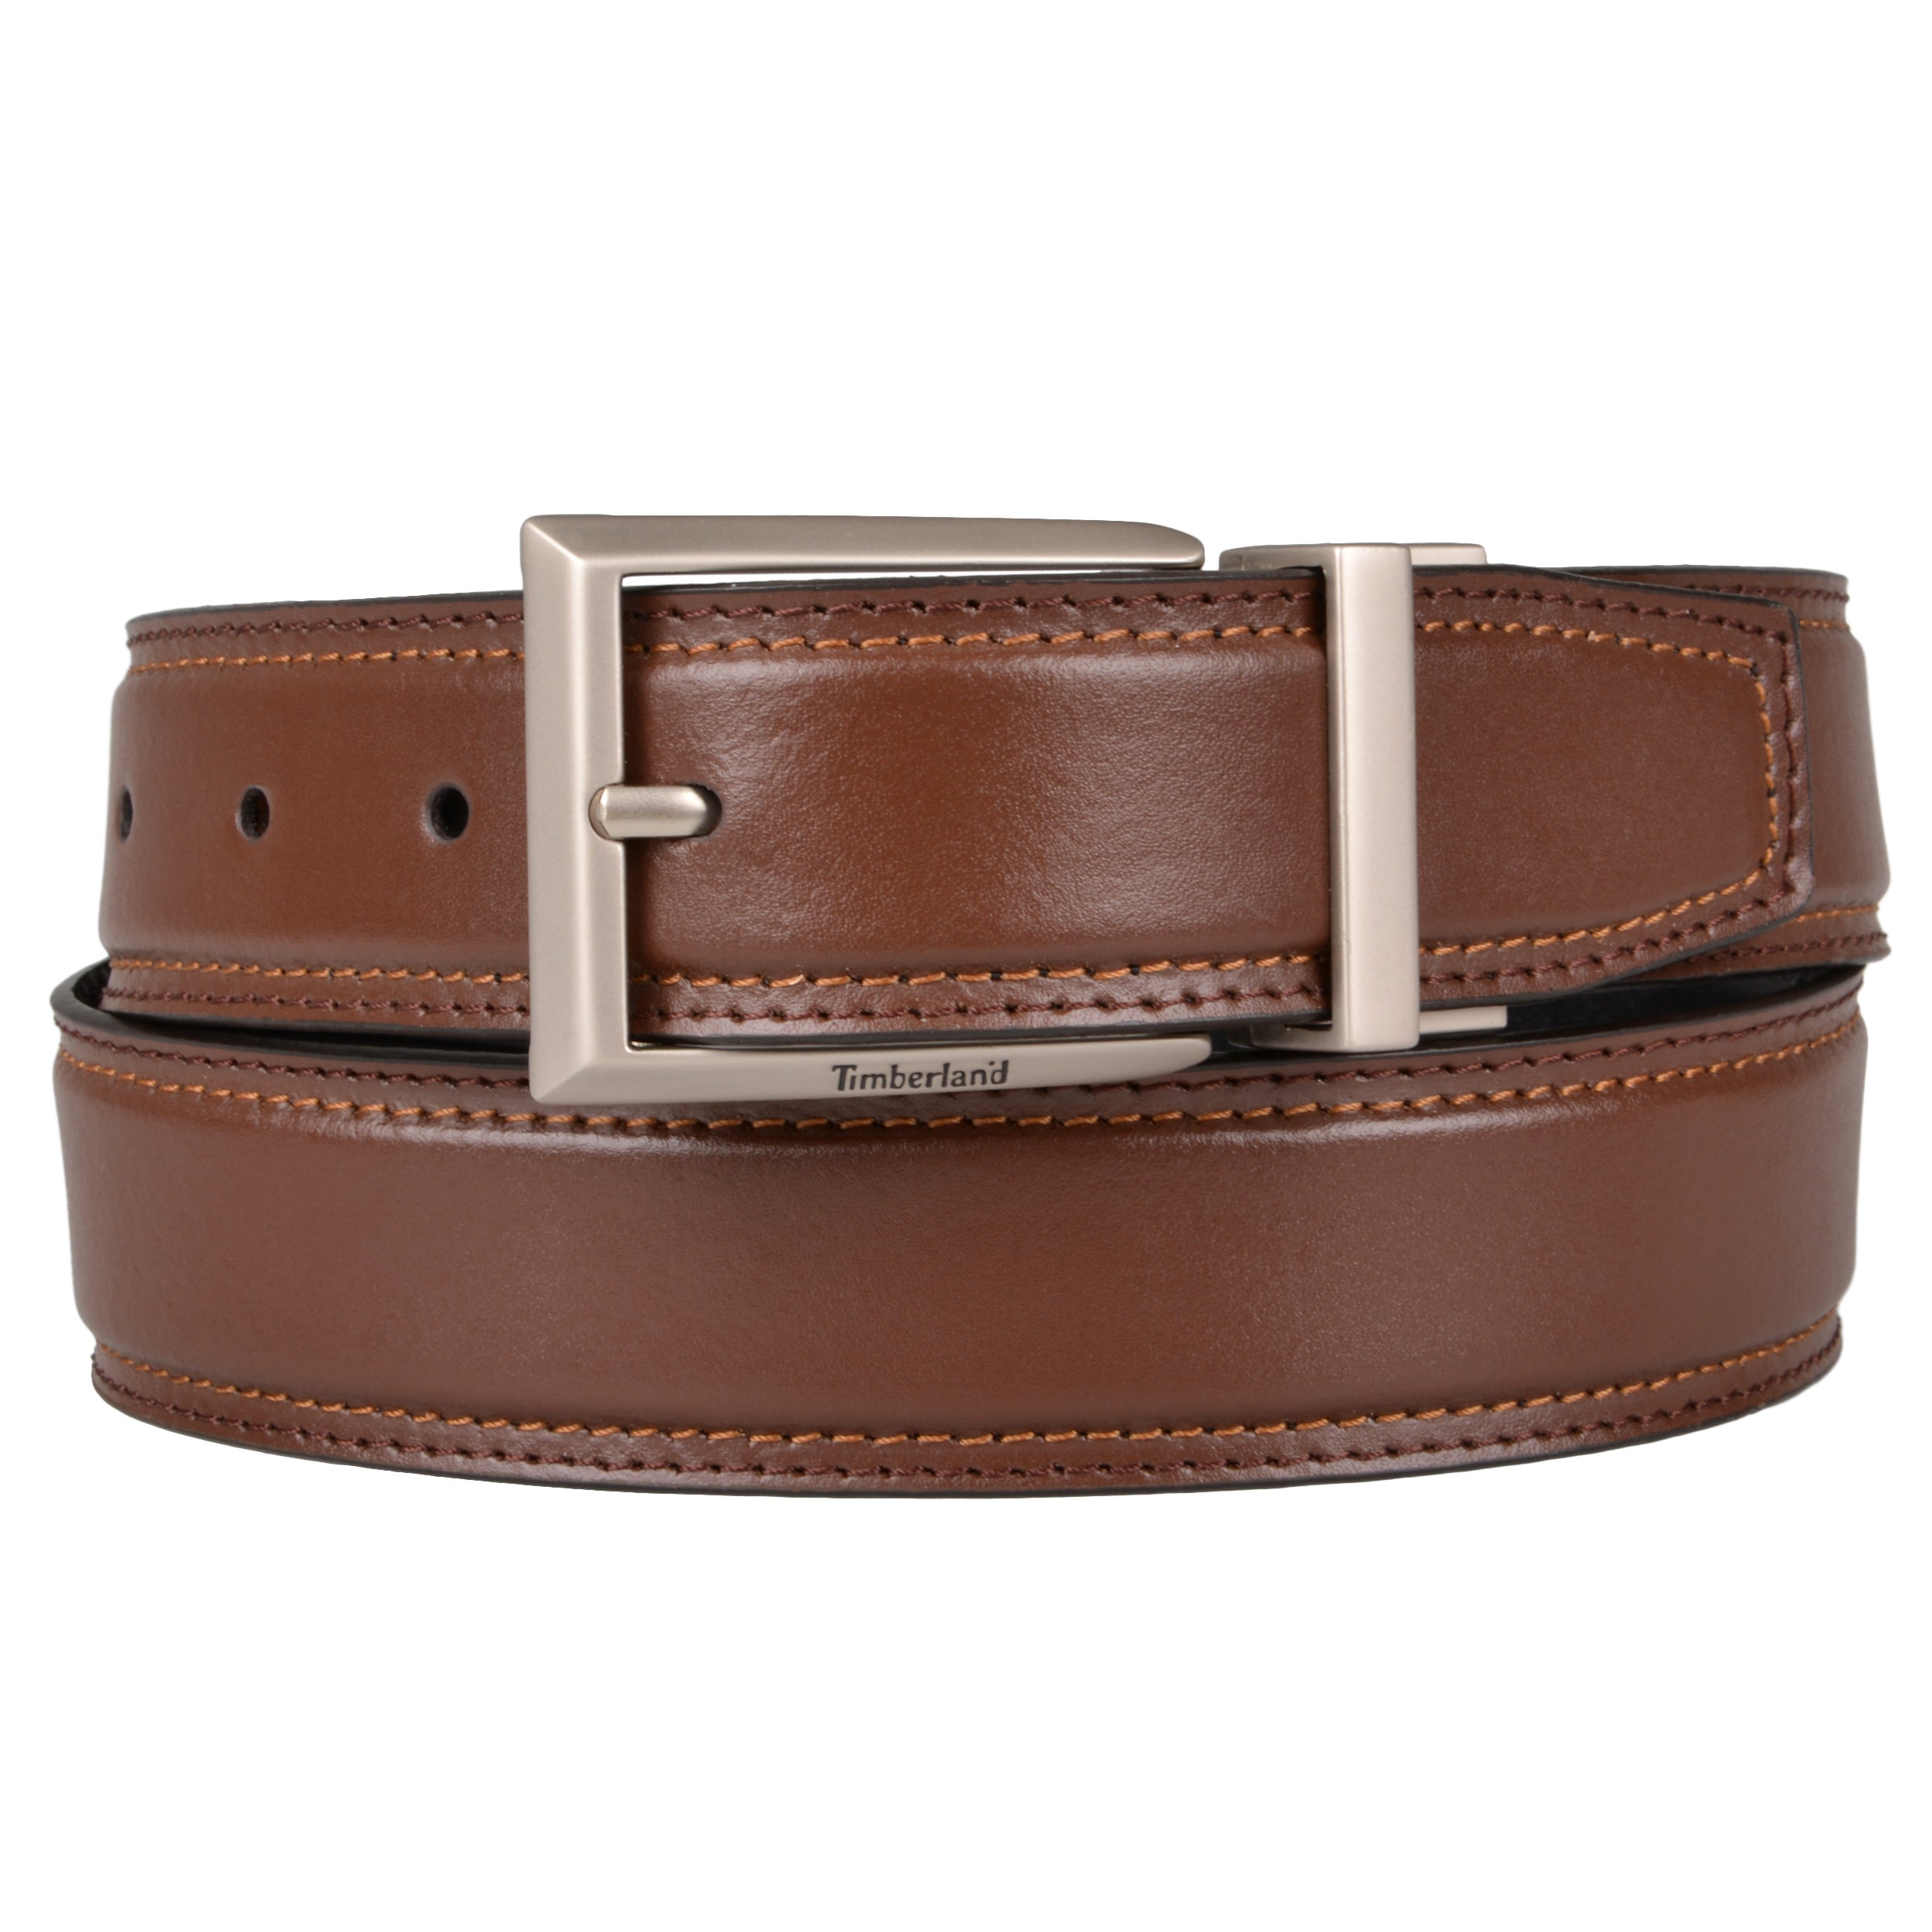 Timberland Men's Reversible Genuine Leather Belt